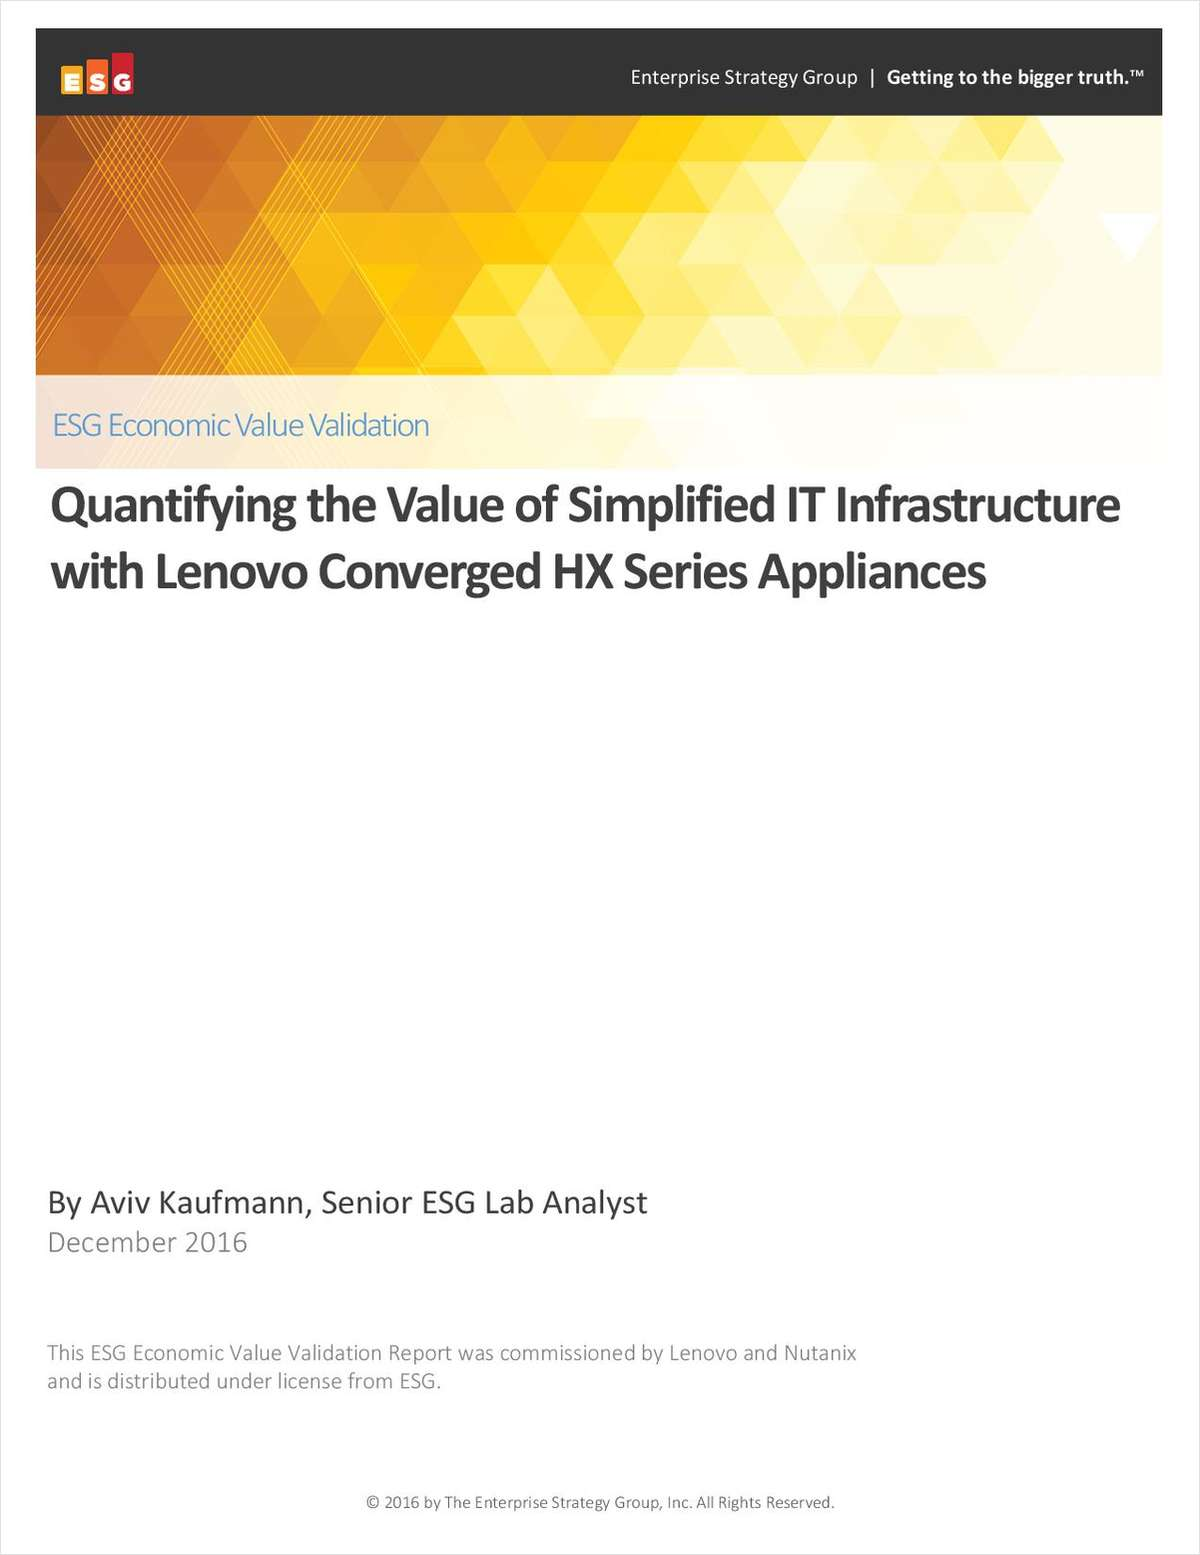 Quantifying the Value of Simplified IT Infrastructure with Lenovo Converged HX Series Appliances